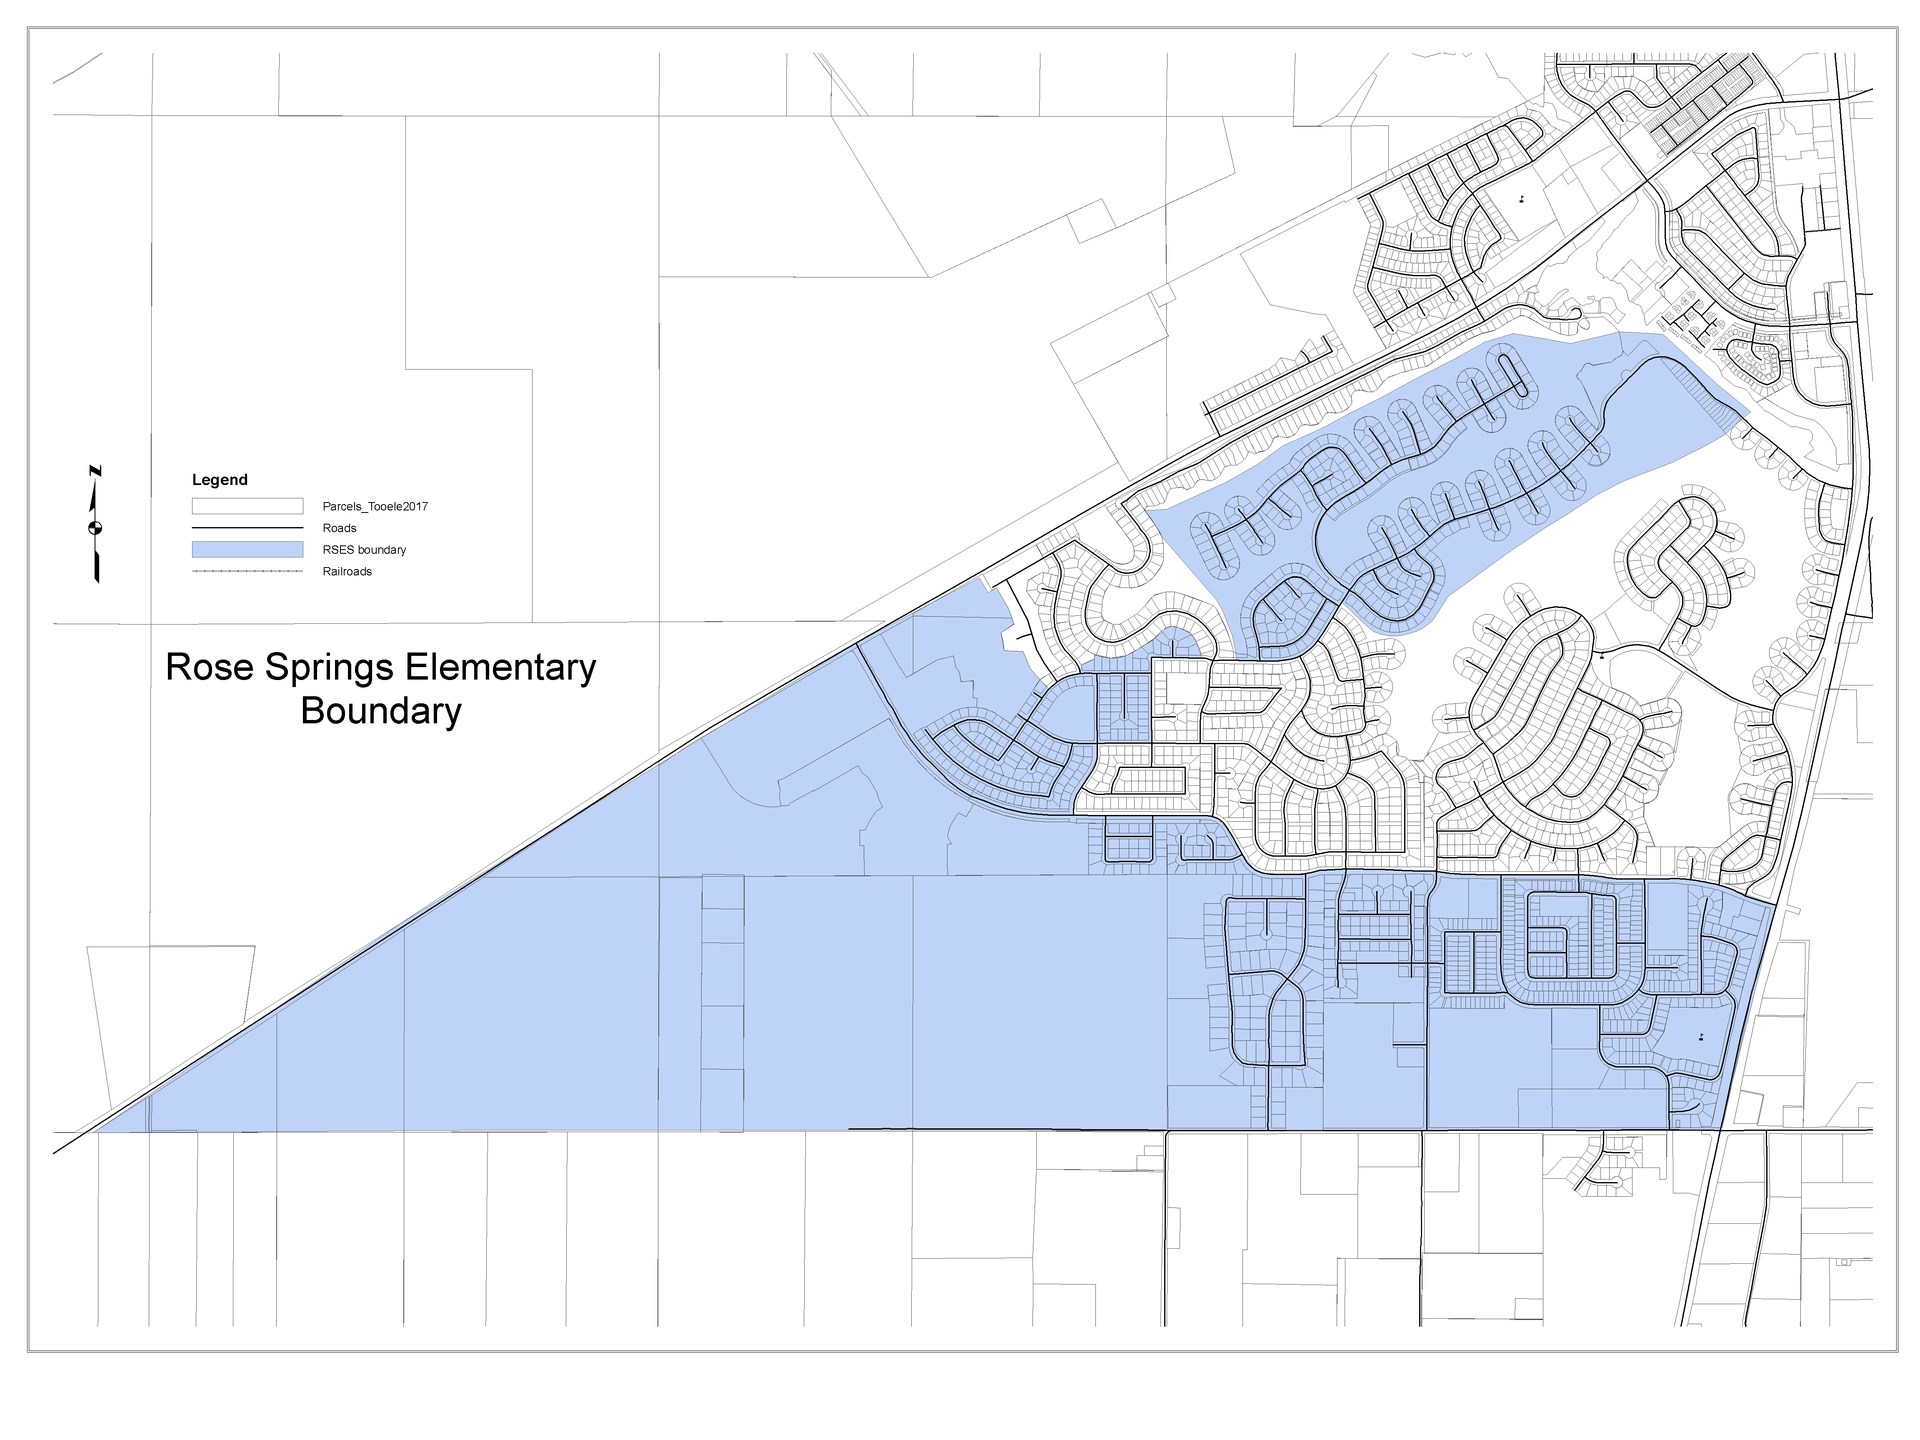 Rose Springs Elementary boundary